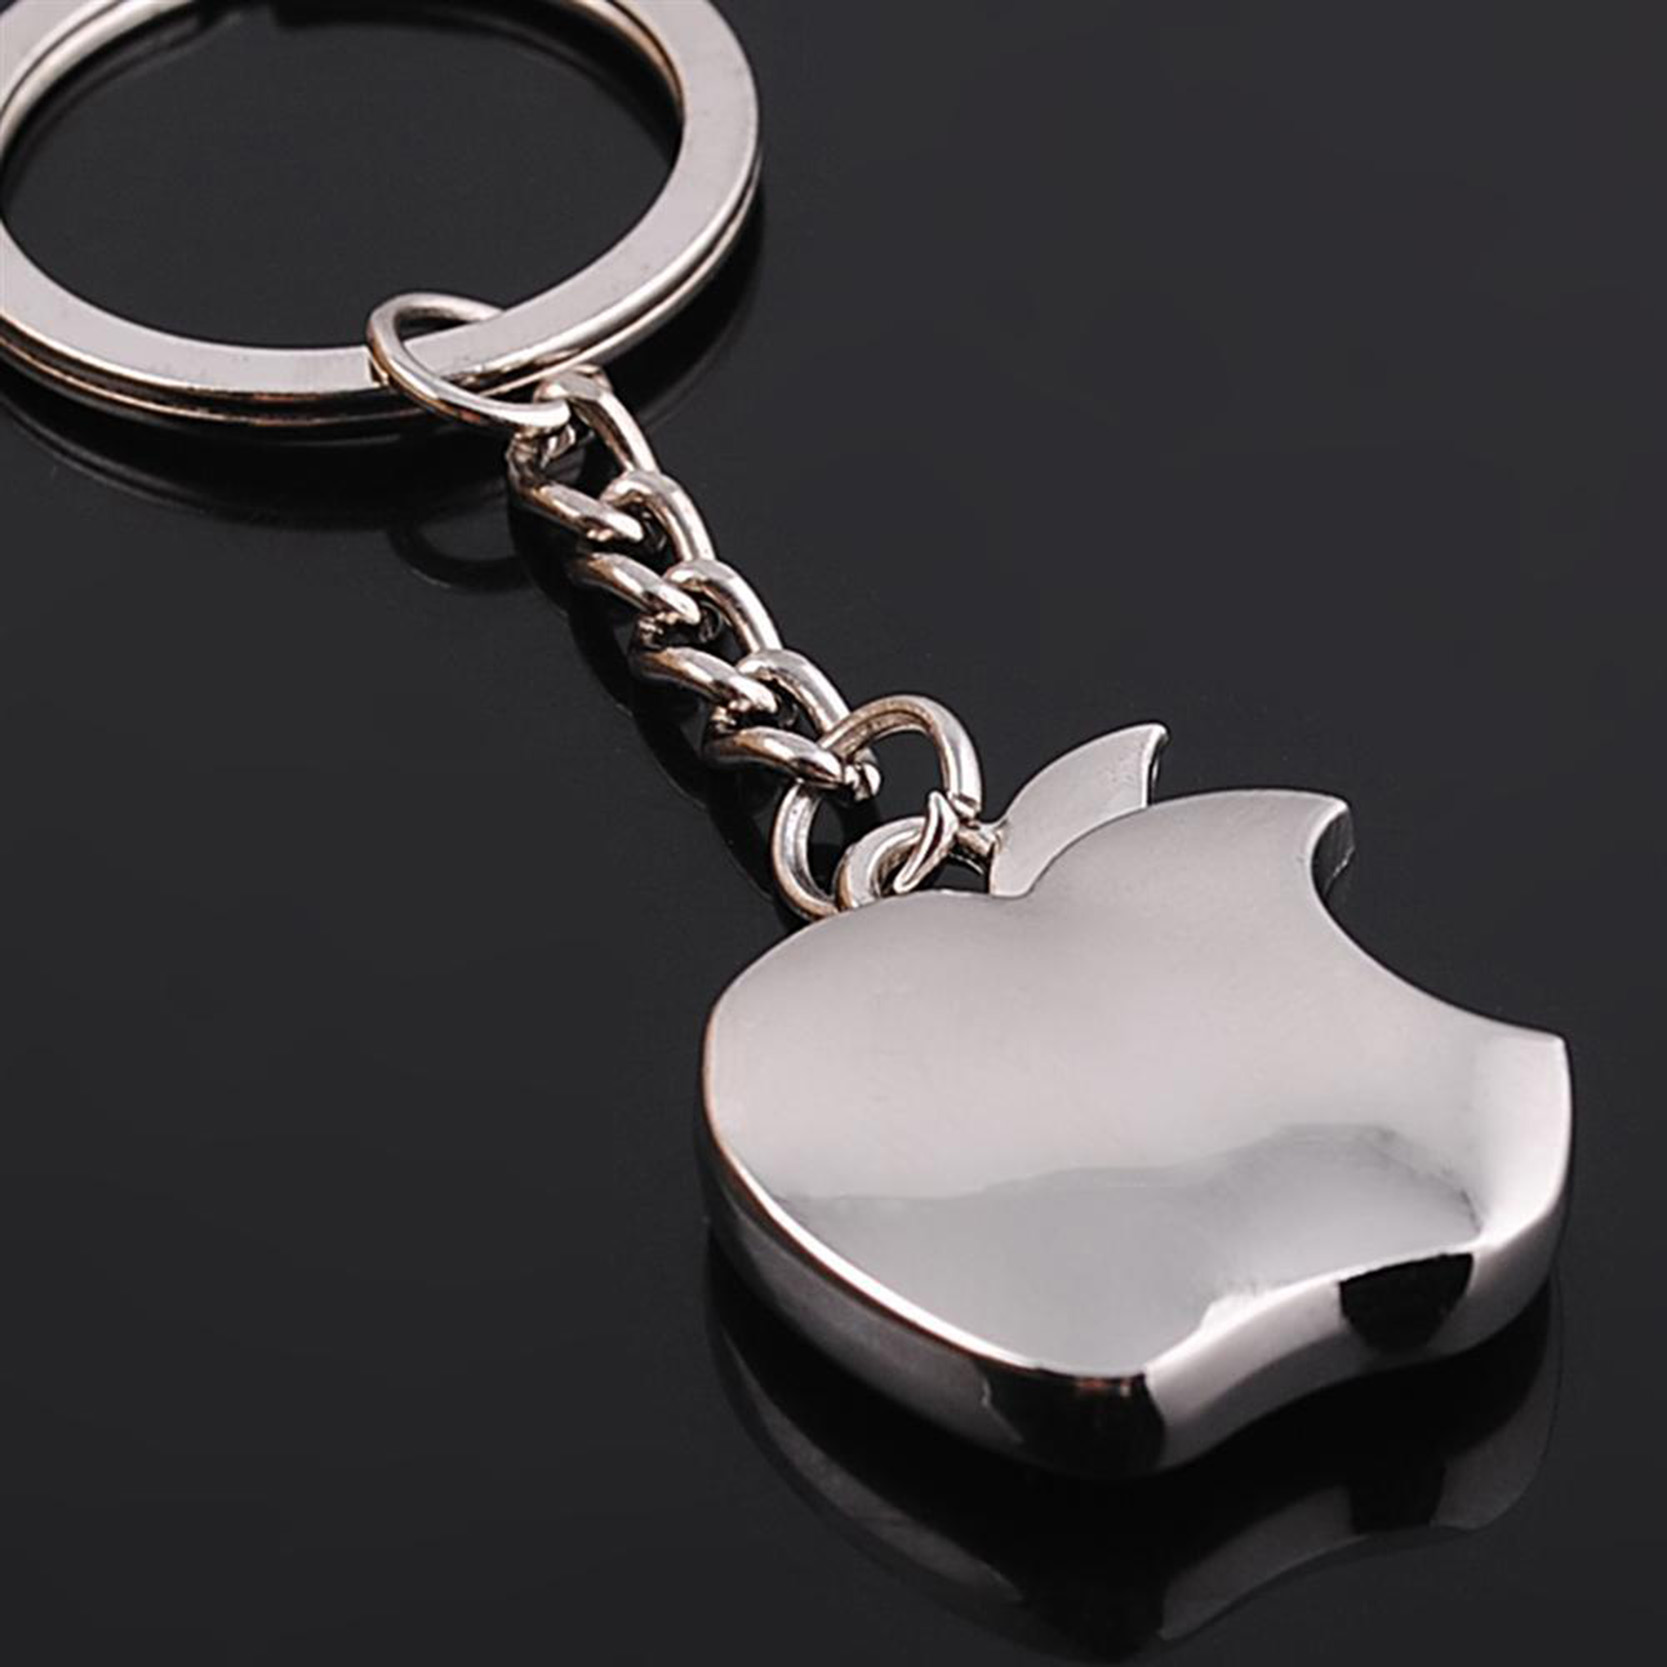 2017 New Arrival Silver Mini Apple Keychain Top Quality Fashion Key Chain for Men Women Best Birthday Valentines Day Gift